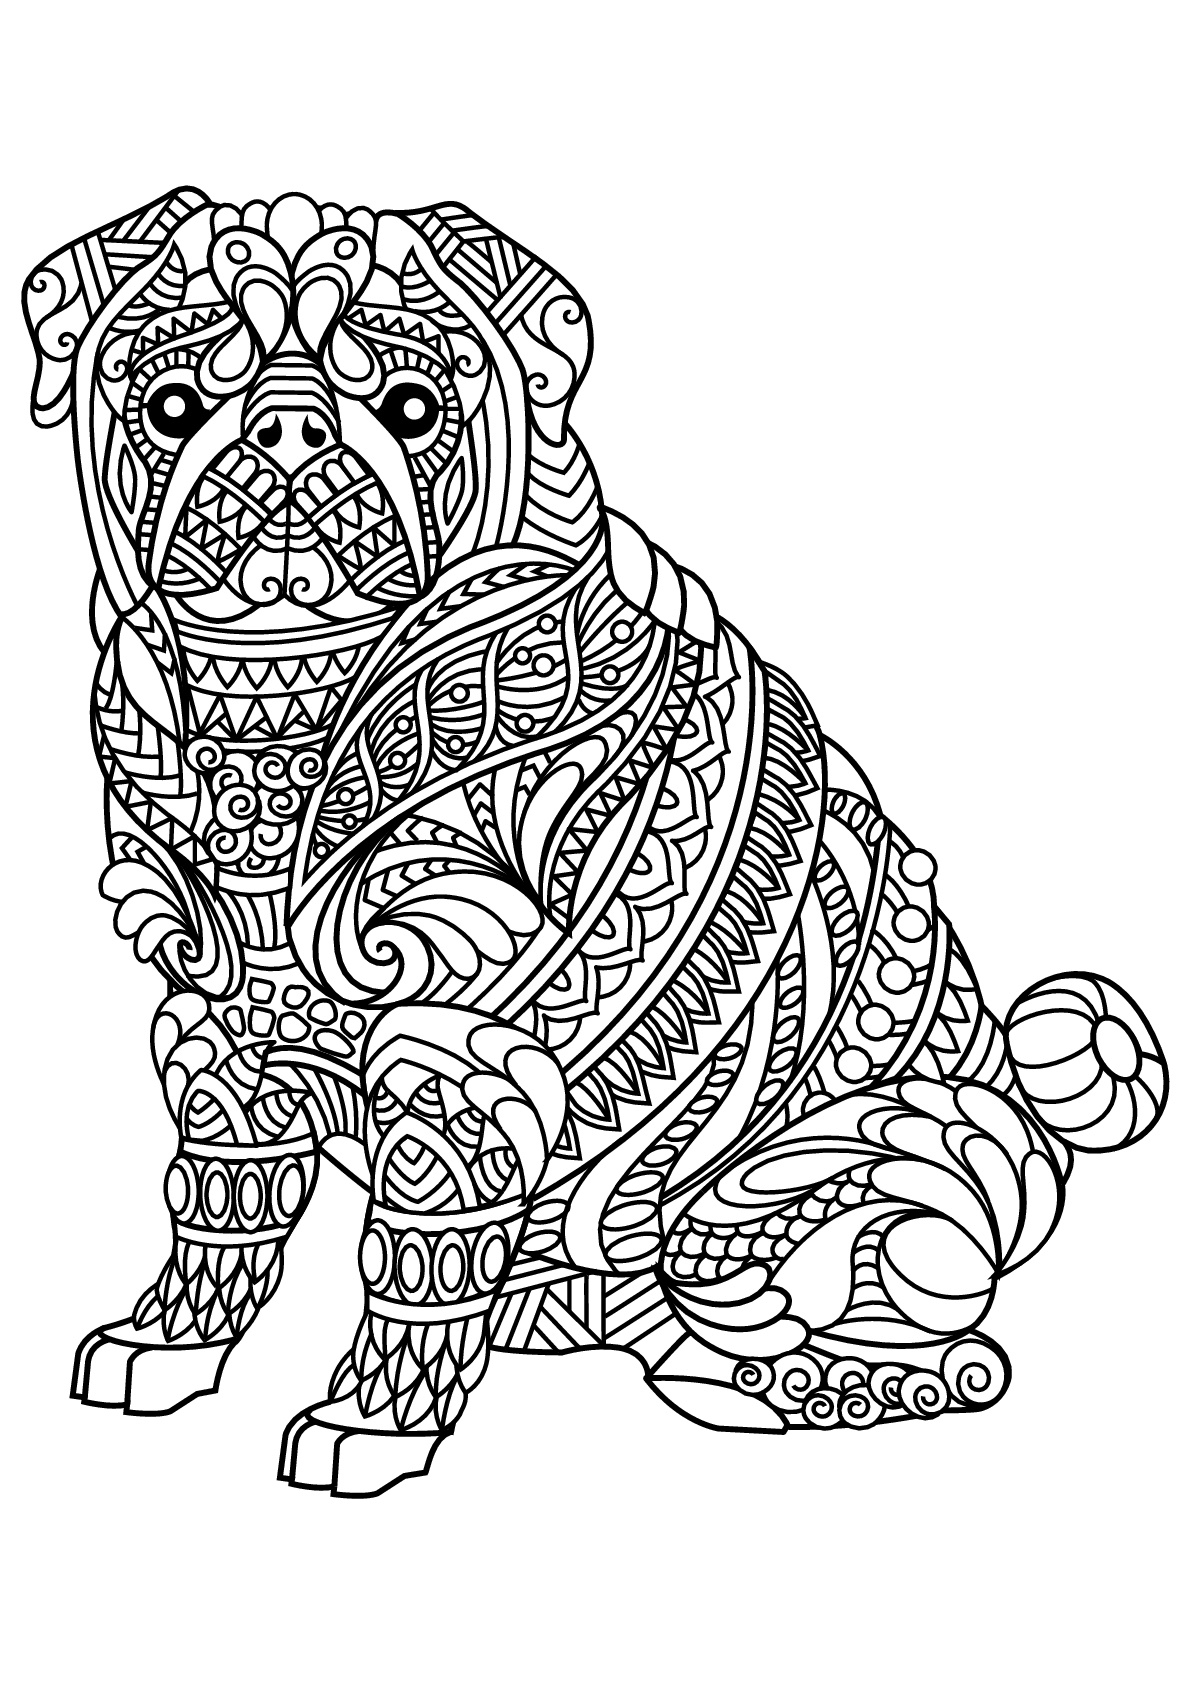 27+ Wonderful Image of Dog Coloring Pages For Adults